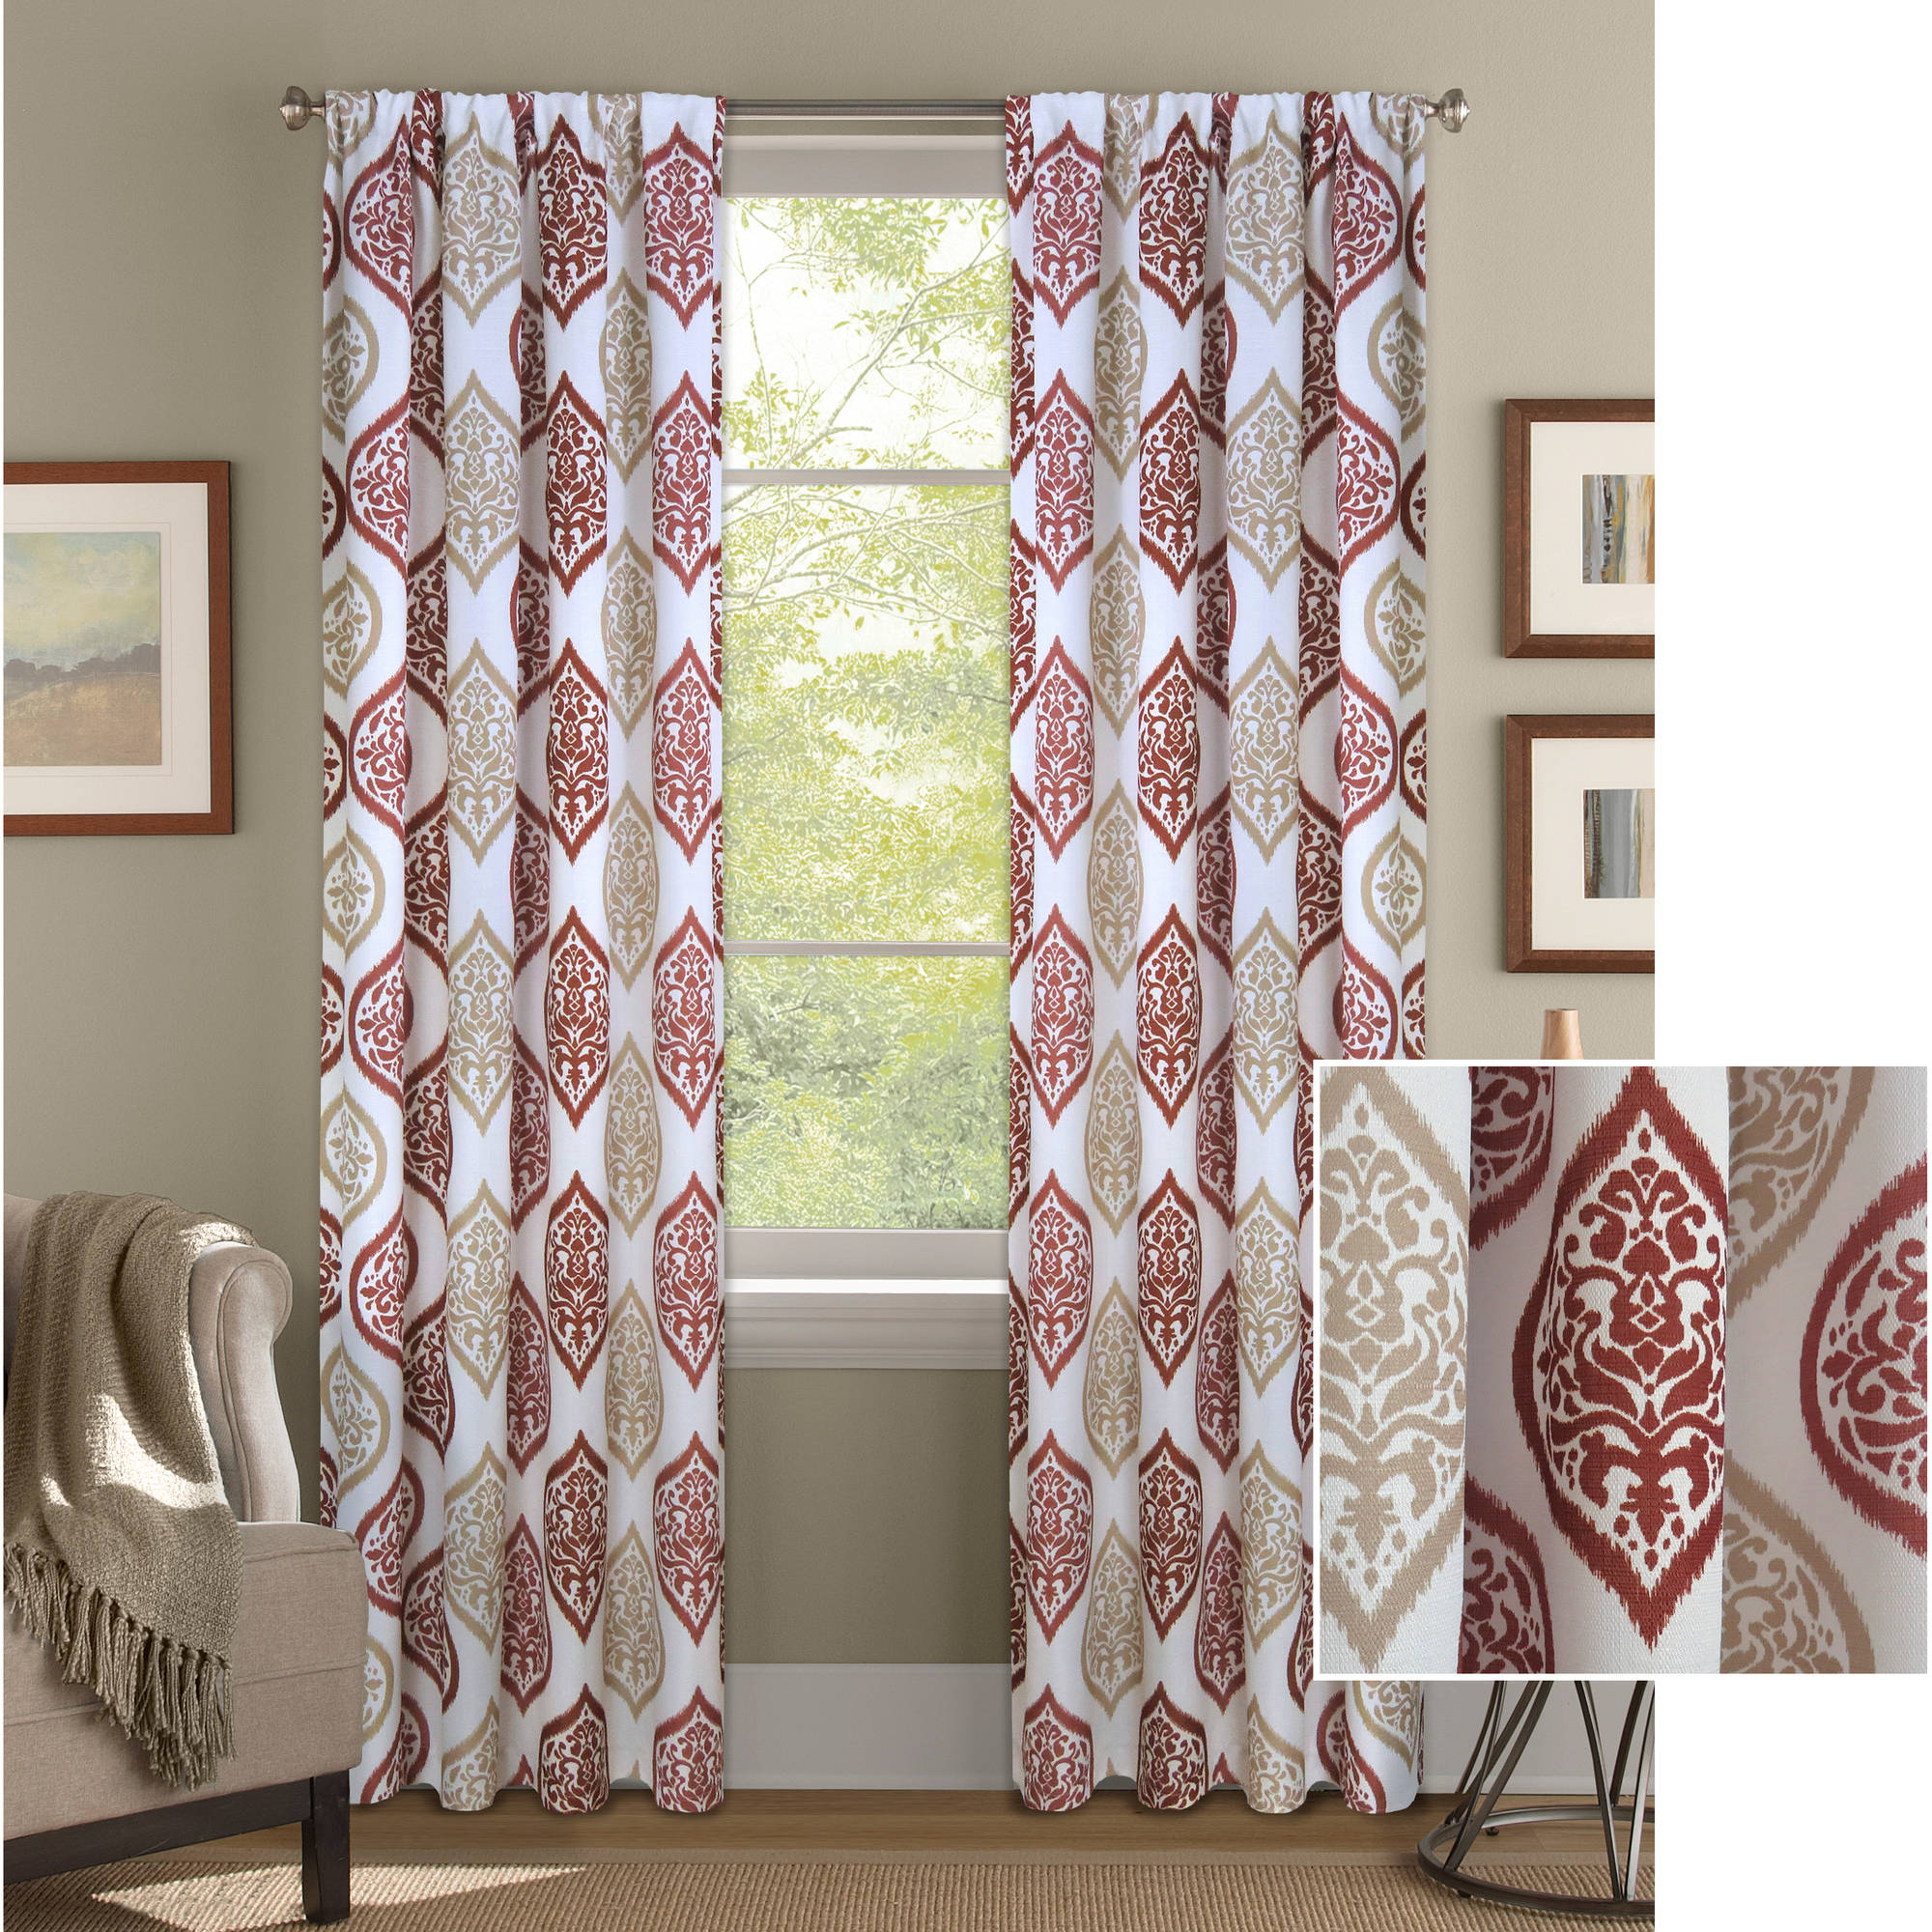 Better Homes and Gardens Damask Ogee Curtain Panel by Colordrift LLC